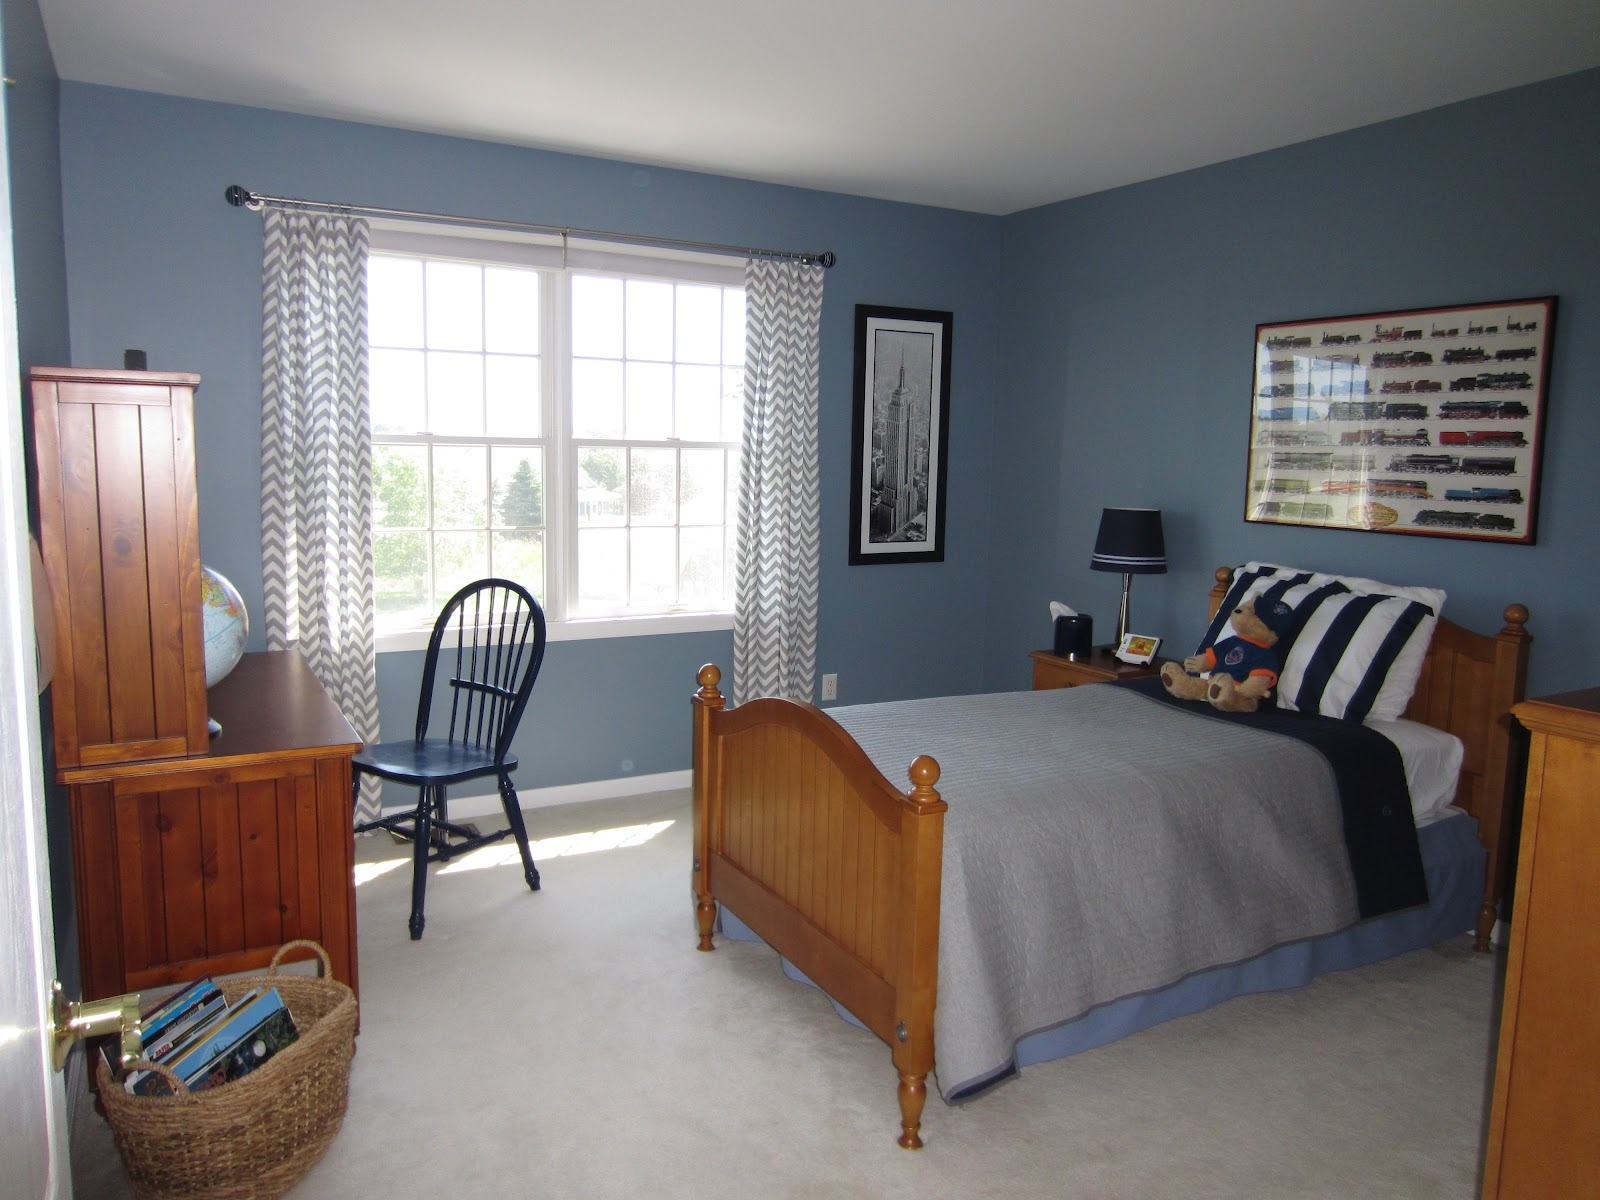 Teenage Room Colors For Guys Popular Colors For Your Home Boys pertaining to measurements 1600 X 1200